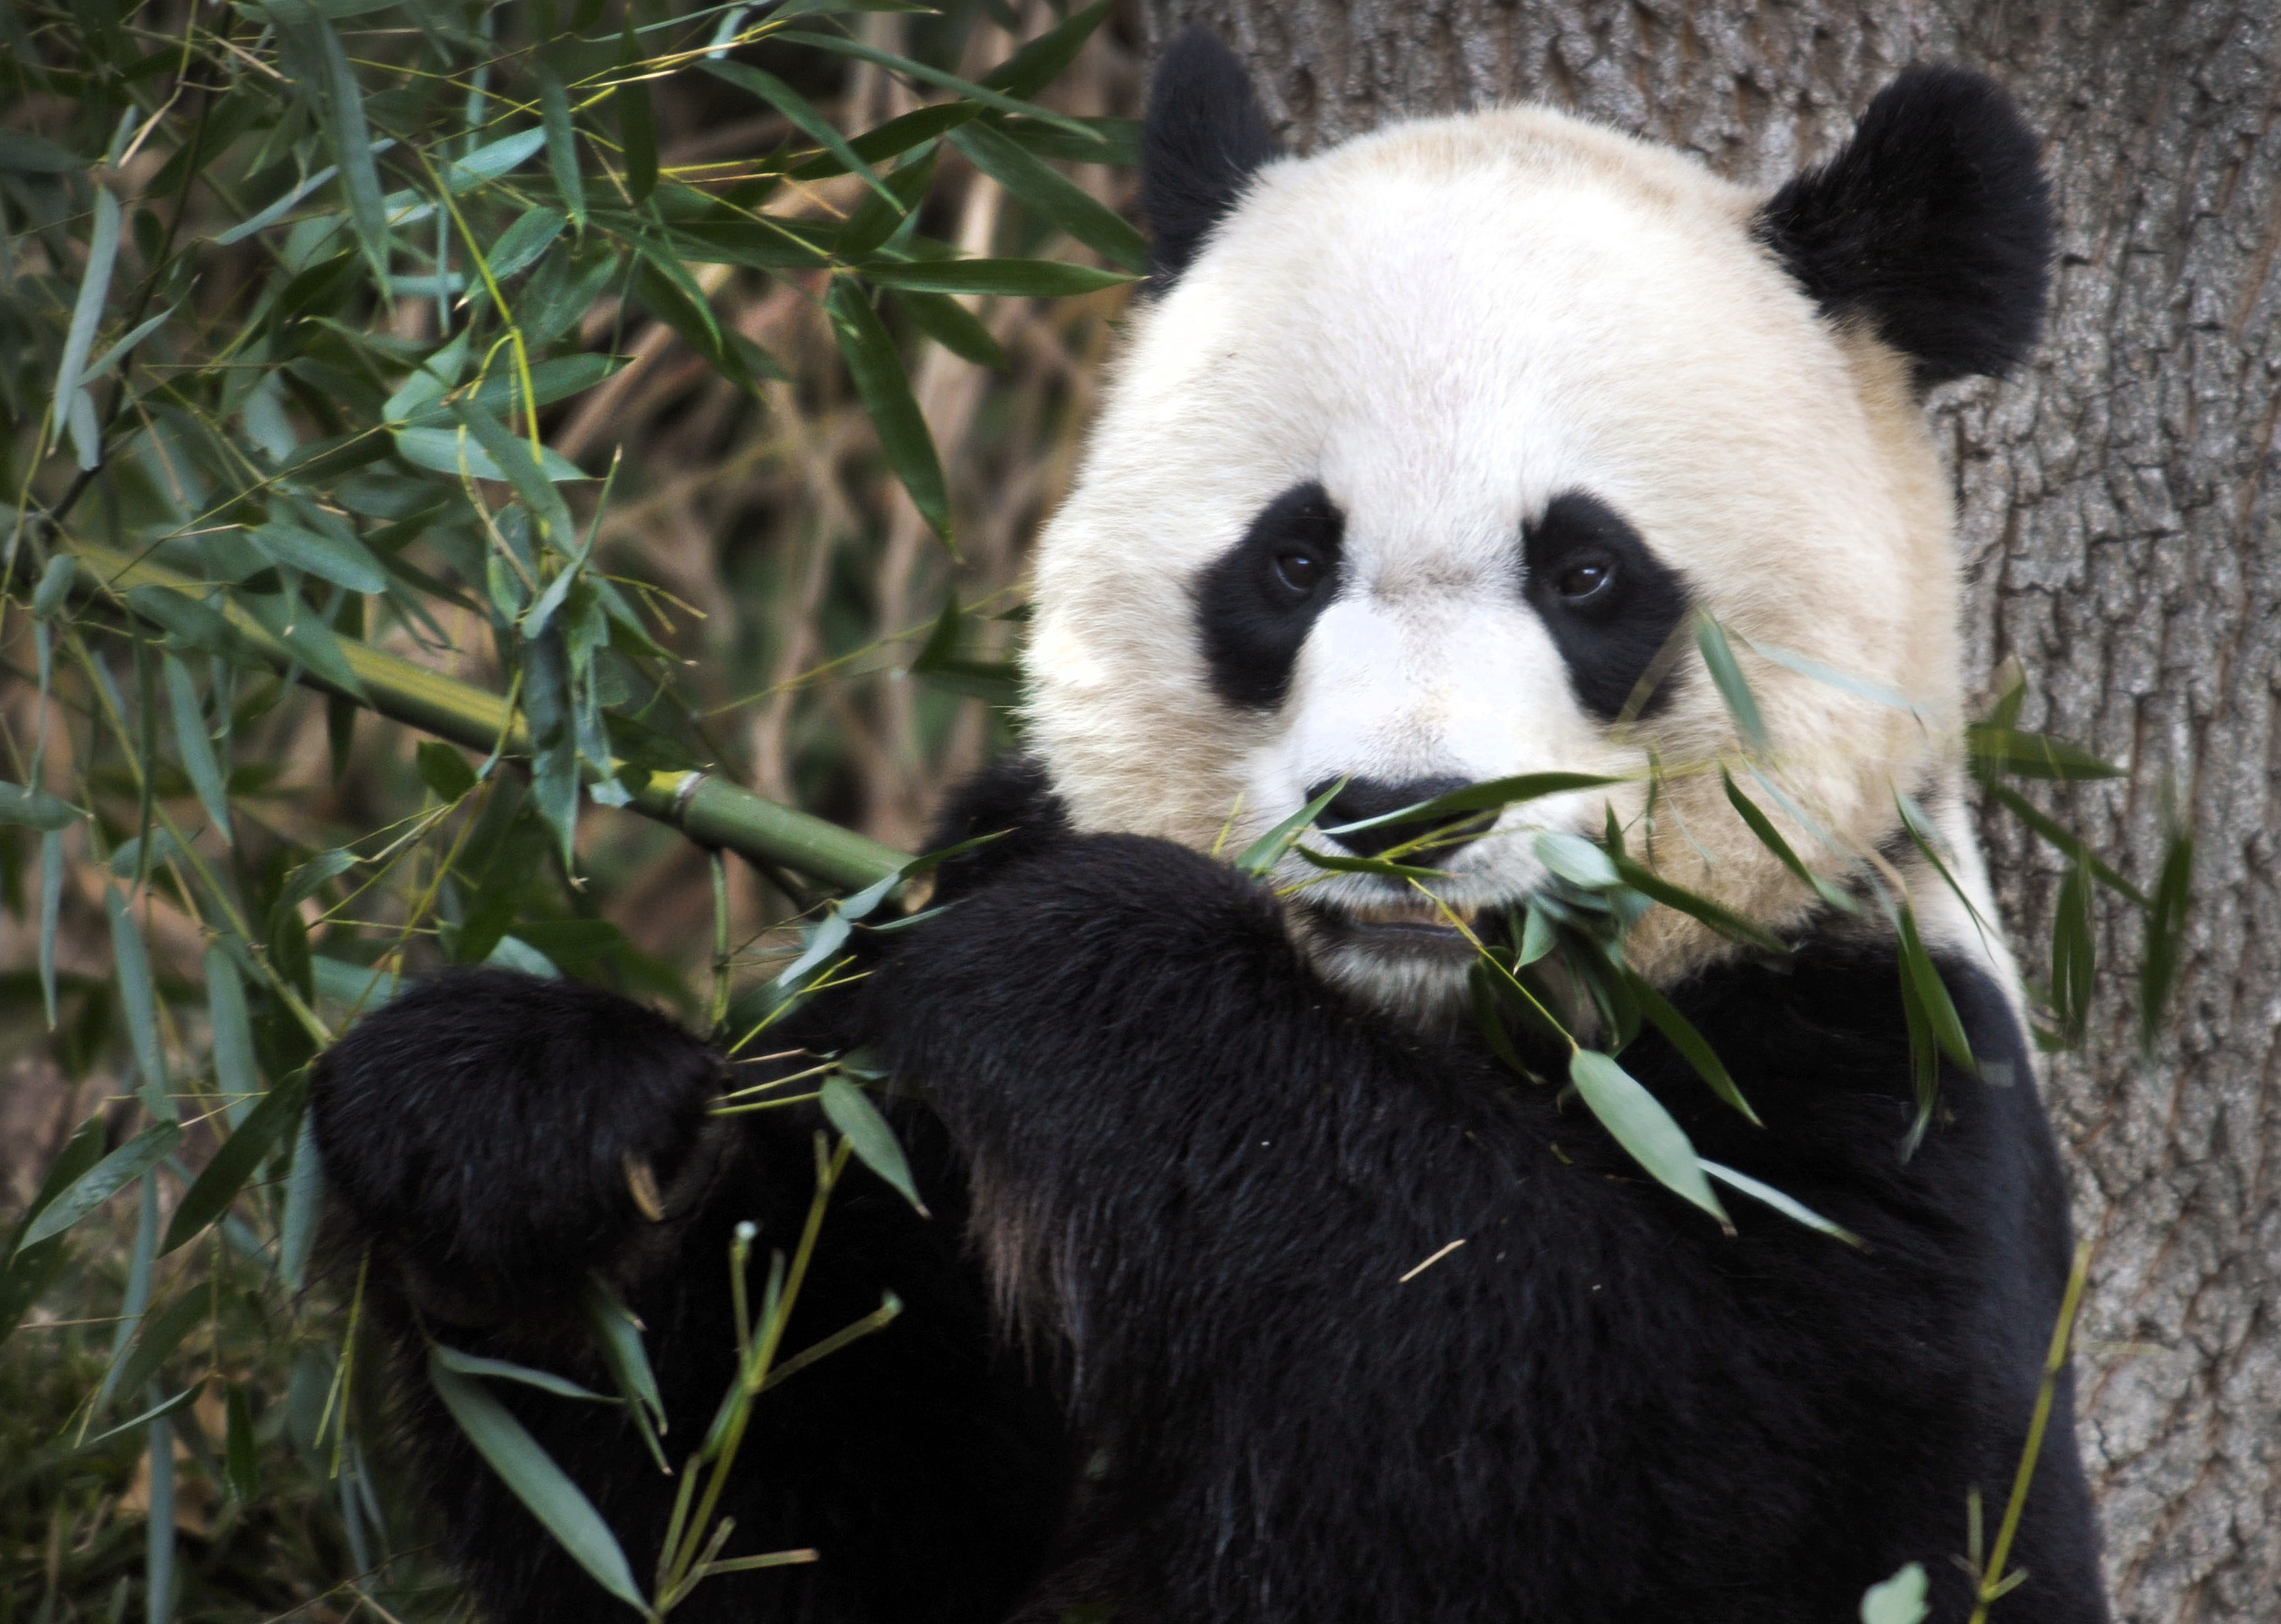 Turn up the heat: National Zoo's giant panda Mei Xiang ready to breed